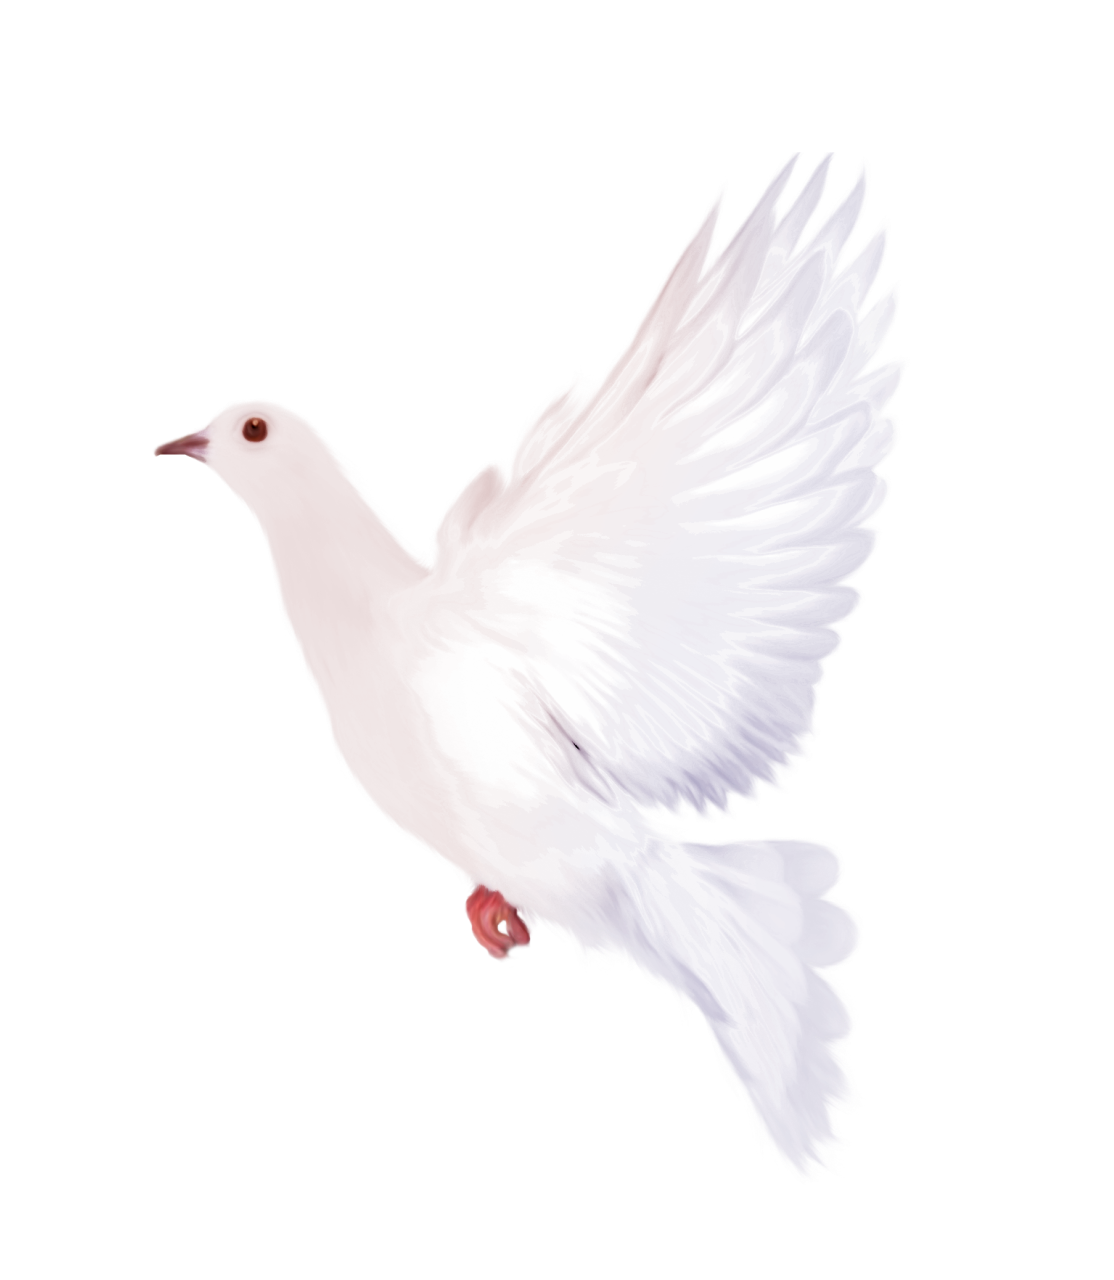 White dove png. Clipart gallery yopriceville high